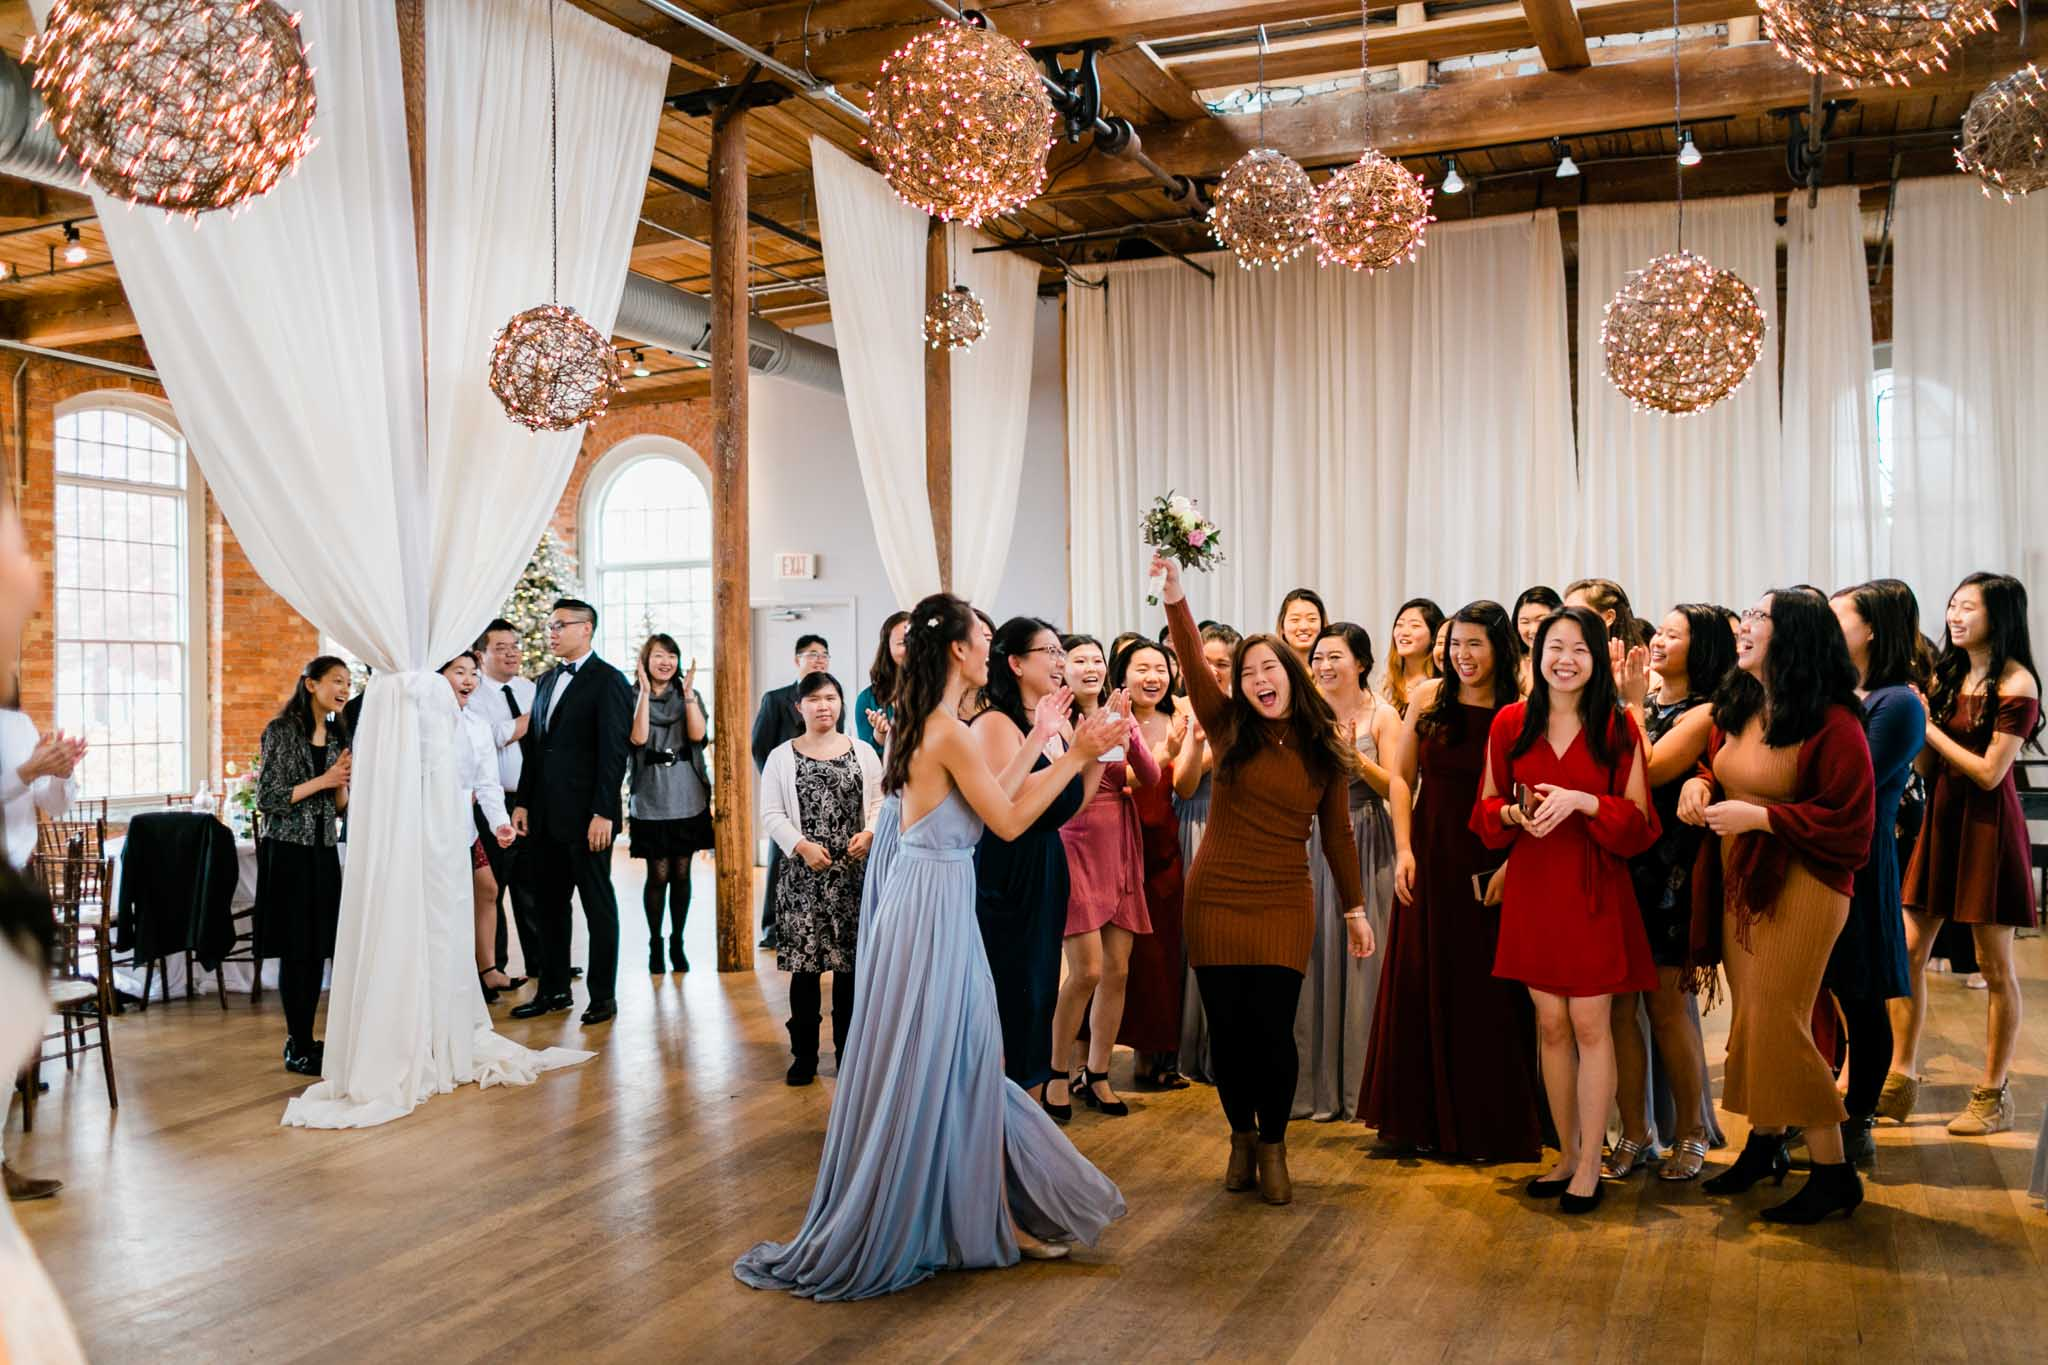 Girl catching bouquet during wedding reception | Durham Wedding Photographer | The Cotton Room, NC | By G. Lin Photography